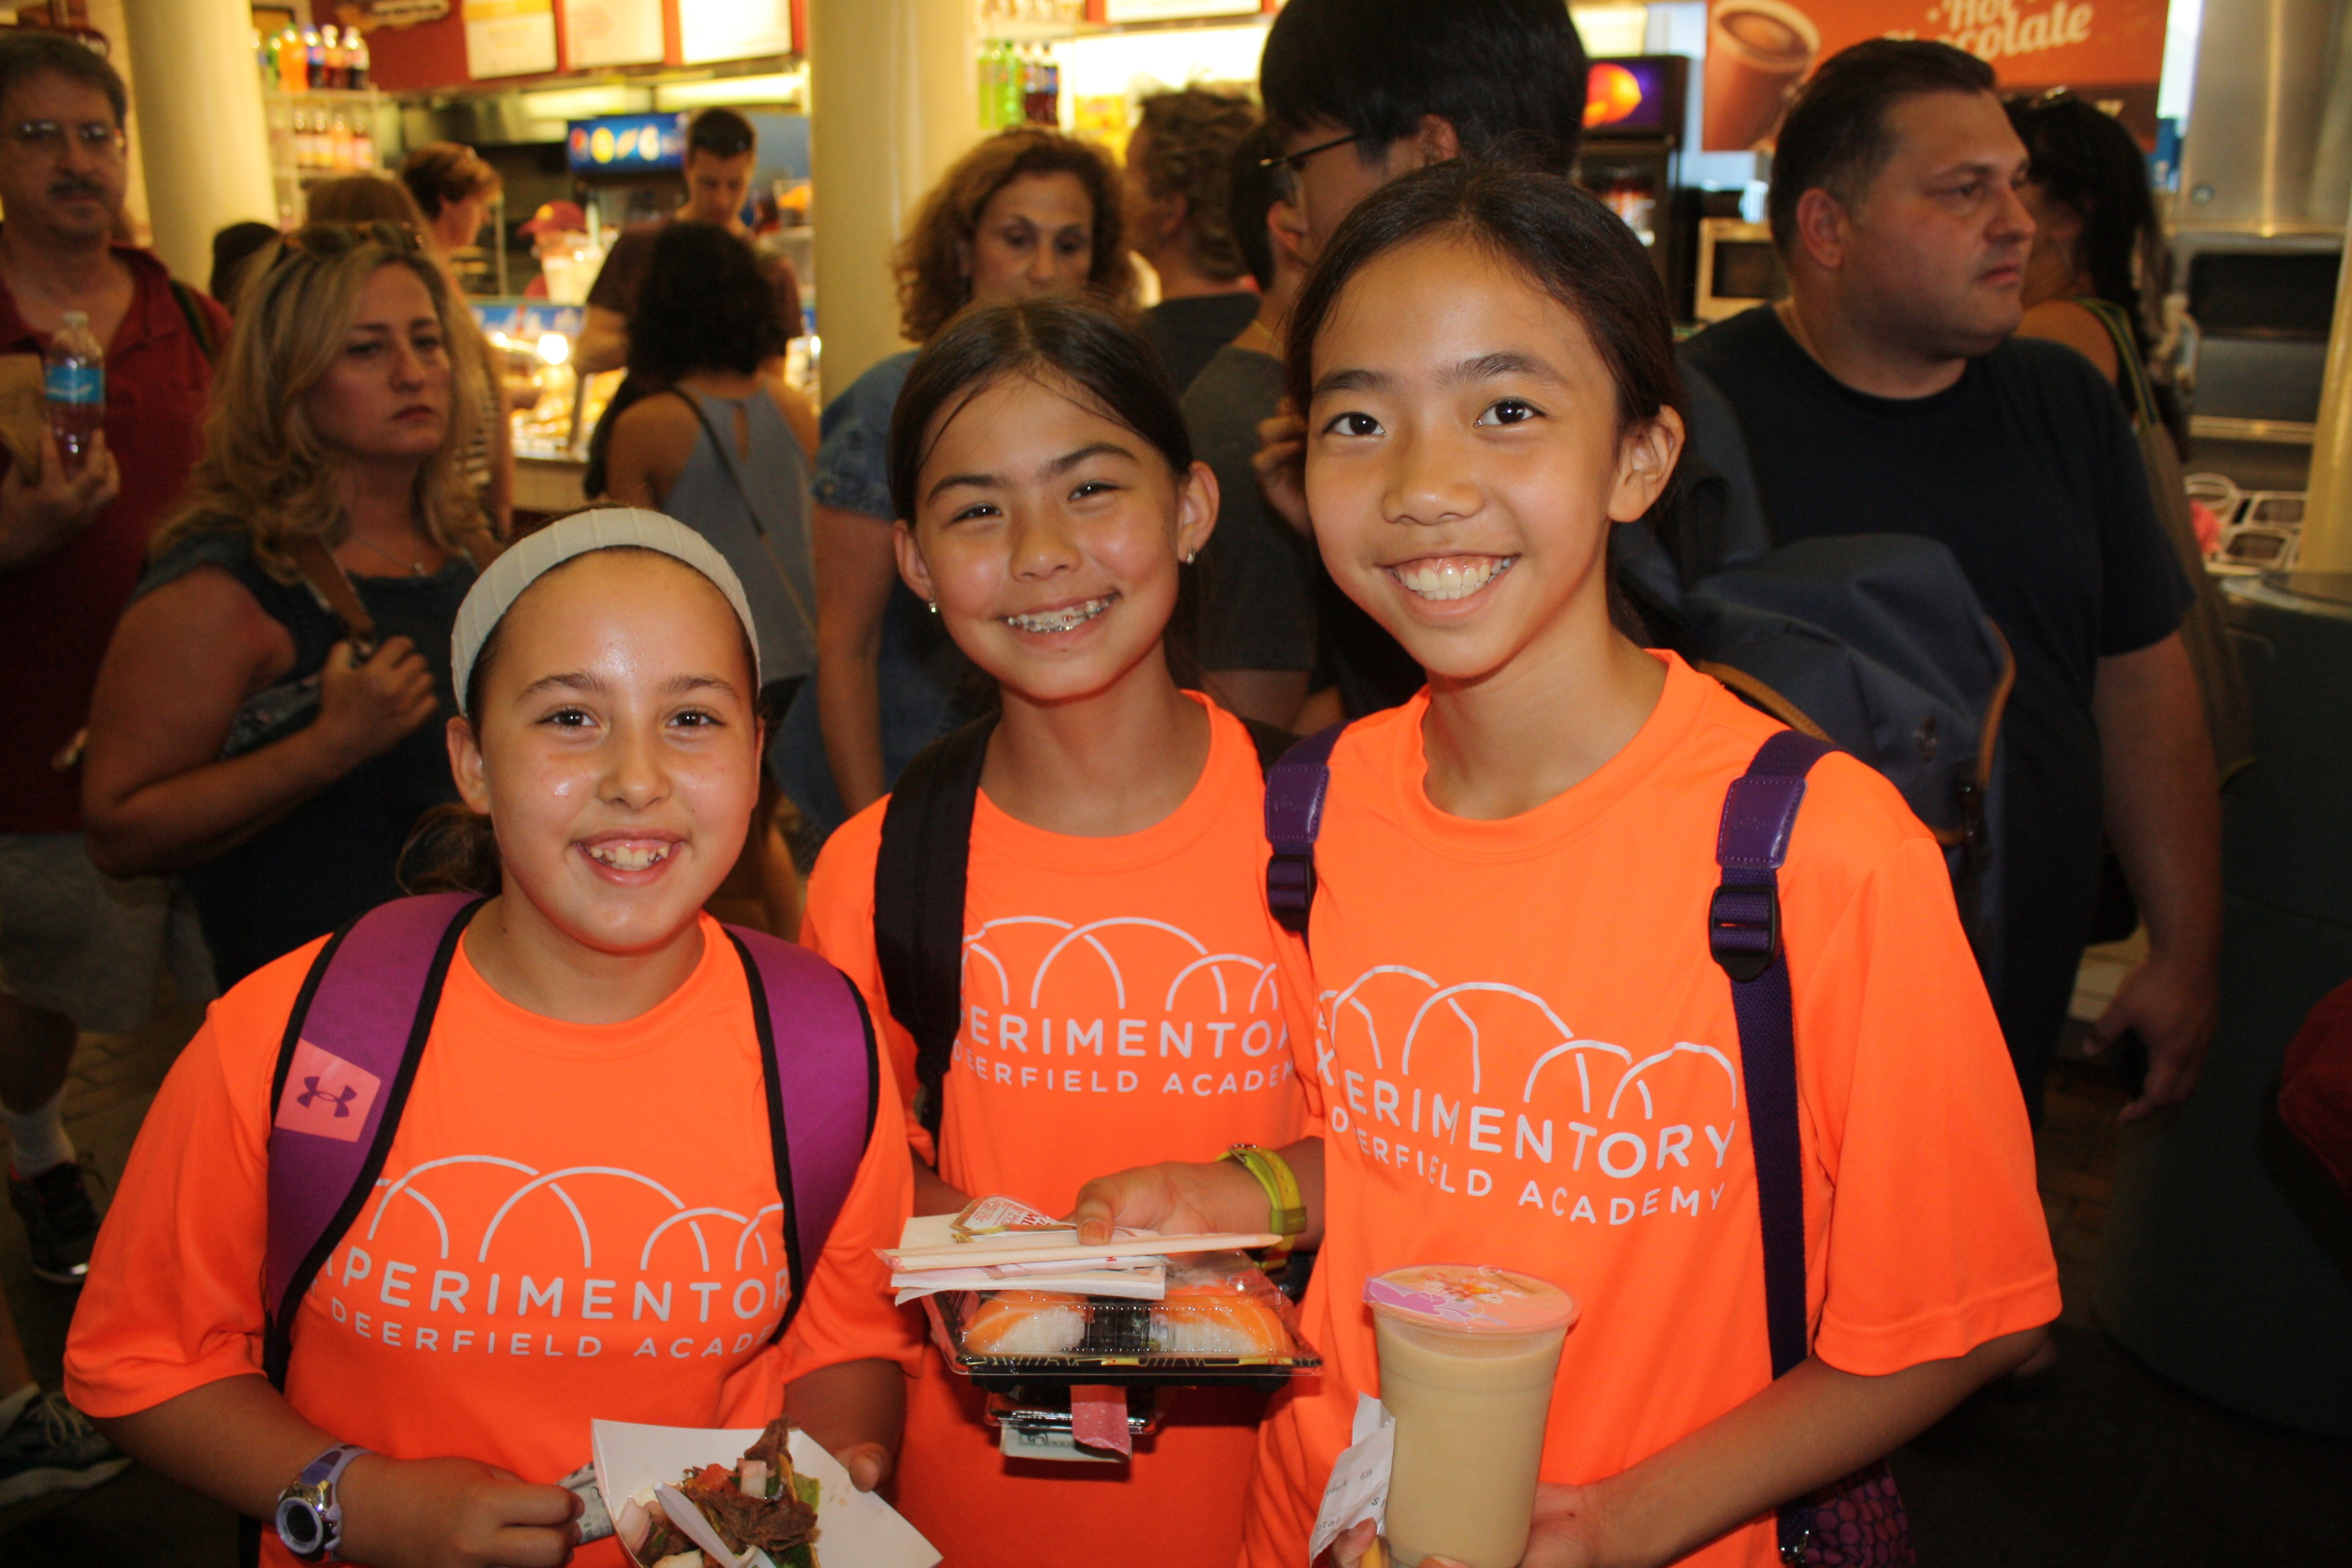 Bella, Lucy, and Serena with their food from the food court.